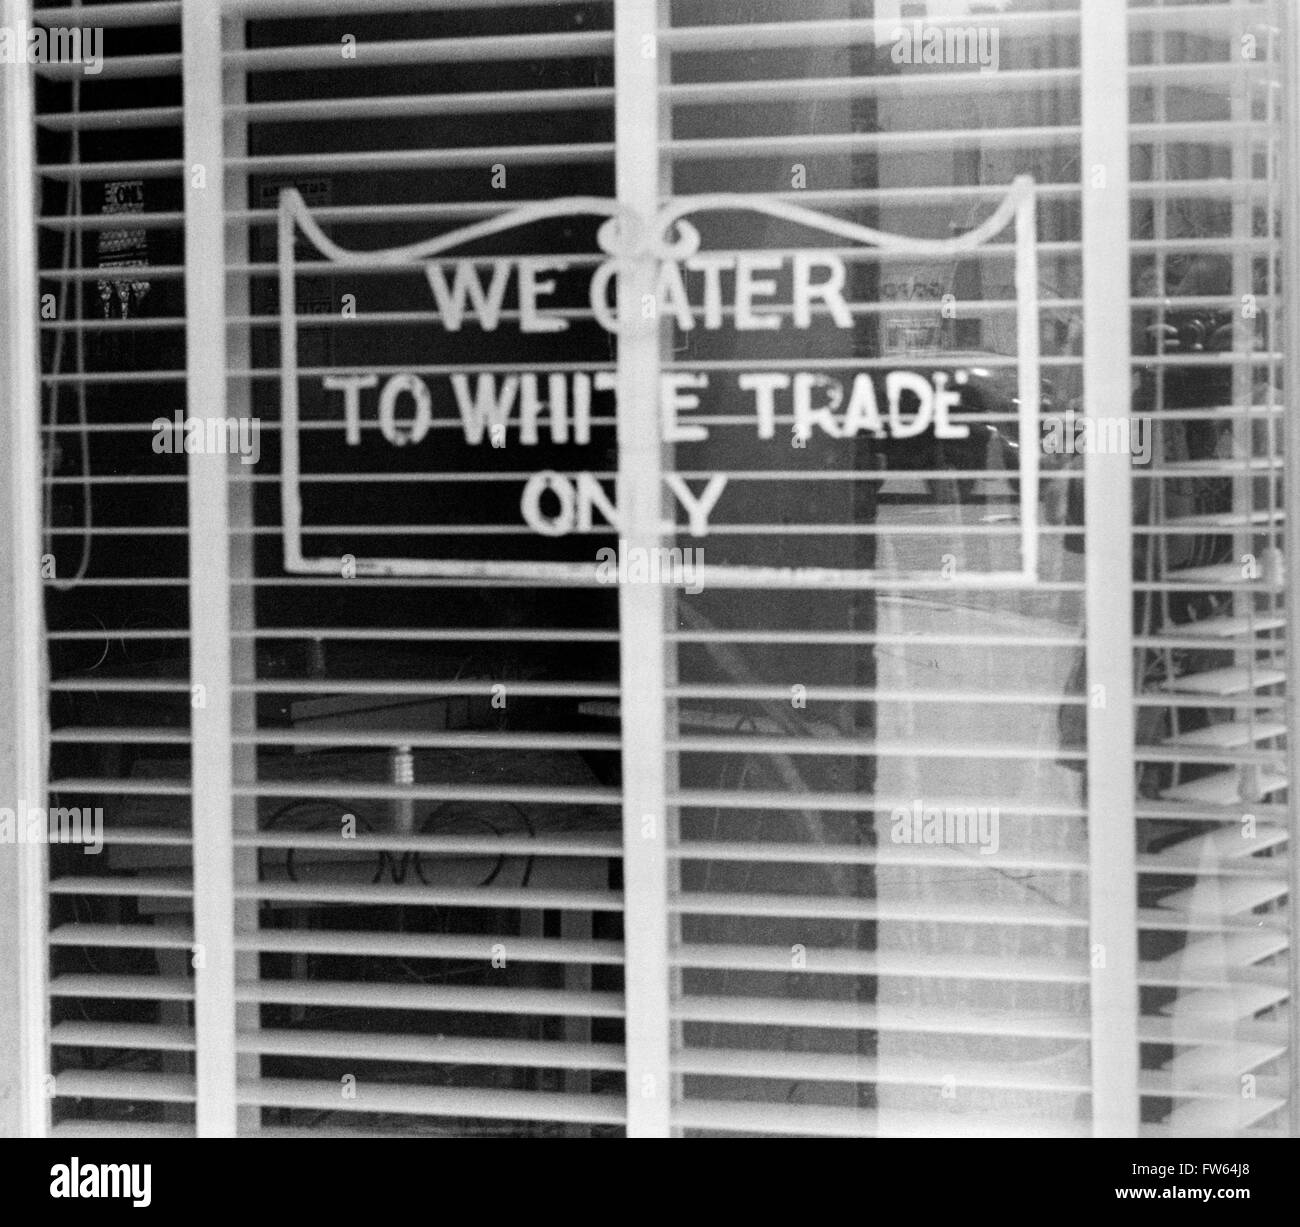 Segregation sign. 'We Cater to White Trade Only' sign in the window of a restaurant in Lancaster, Ohio, - Stock Image